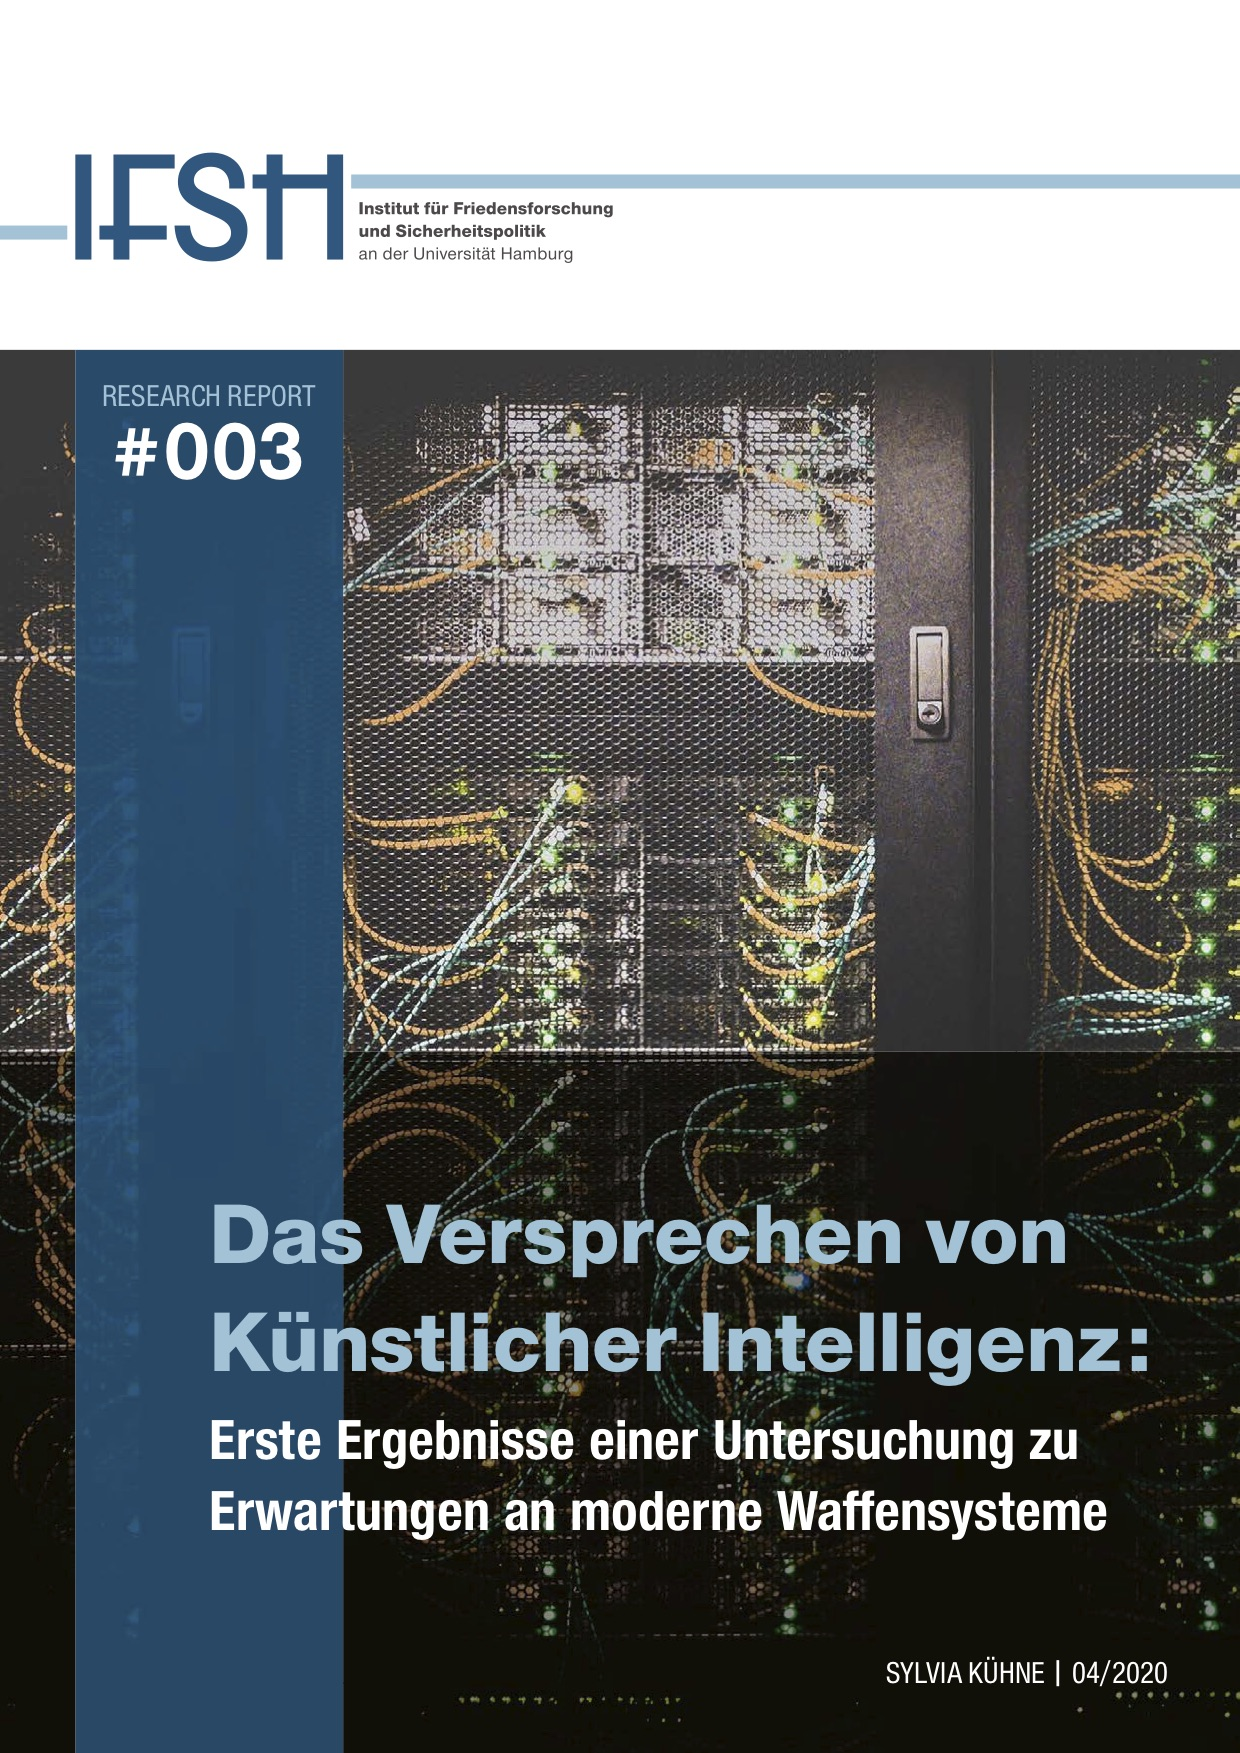 20200520_IFSH_Research_Report_003_KI_Titel